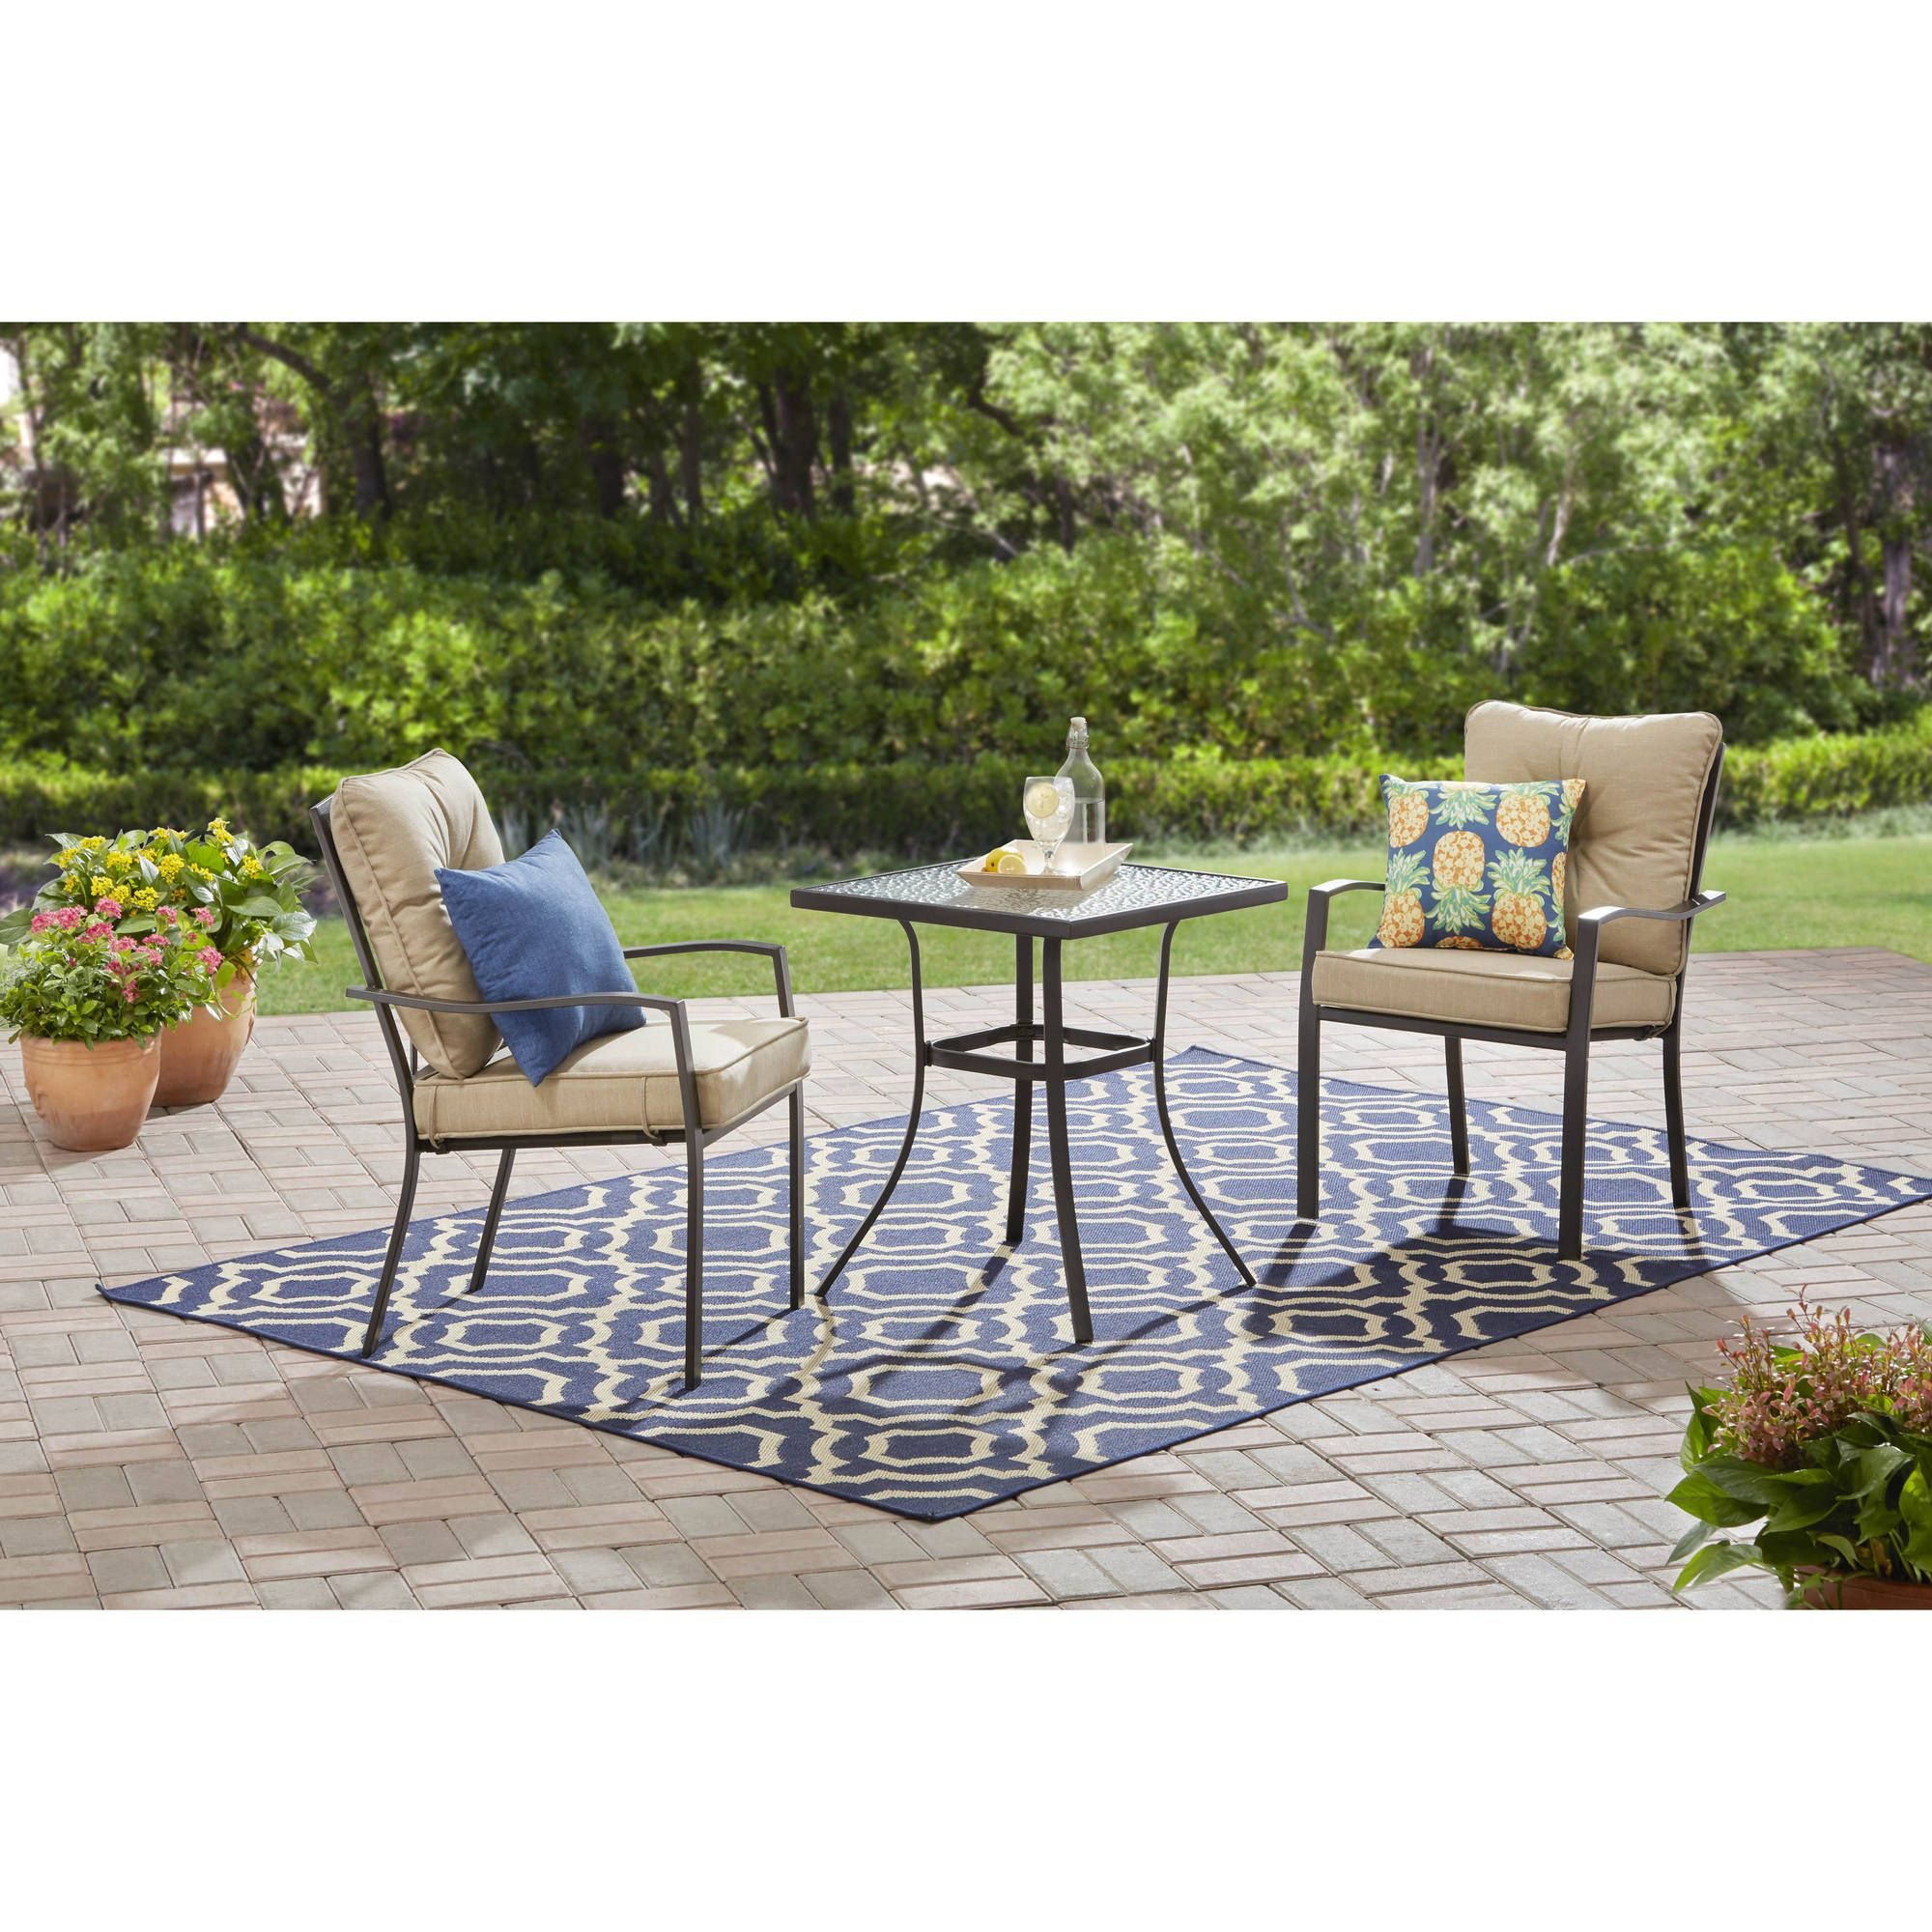 Where To Buy Mainstay Patio Furniture